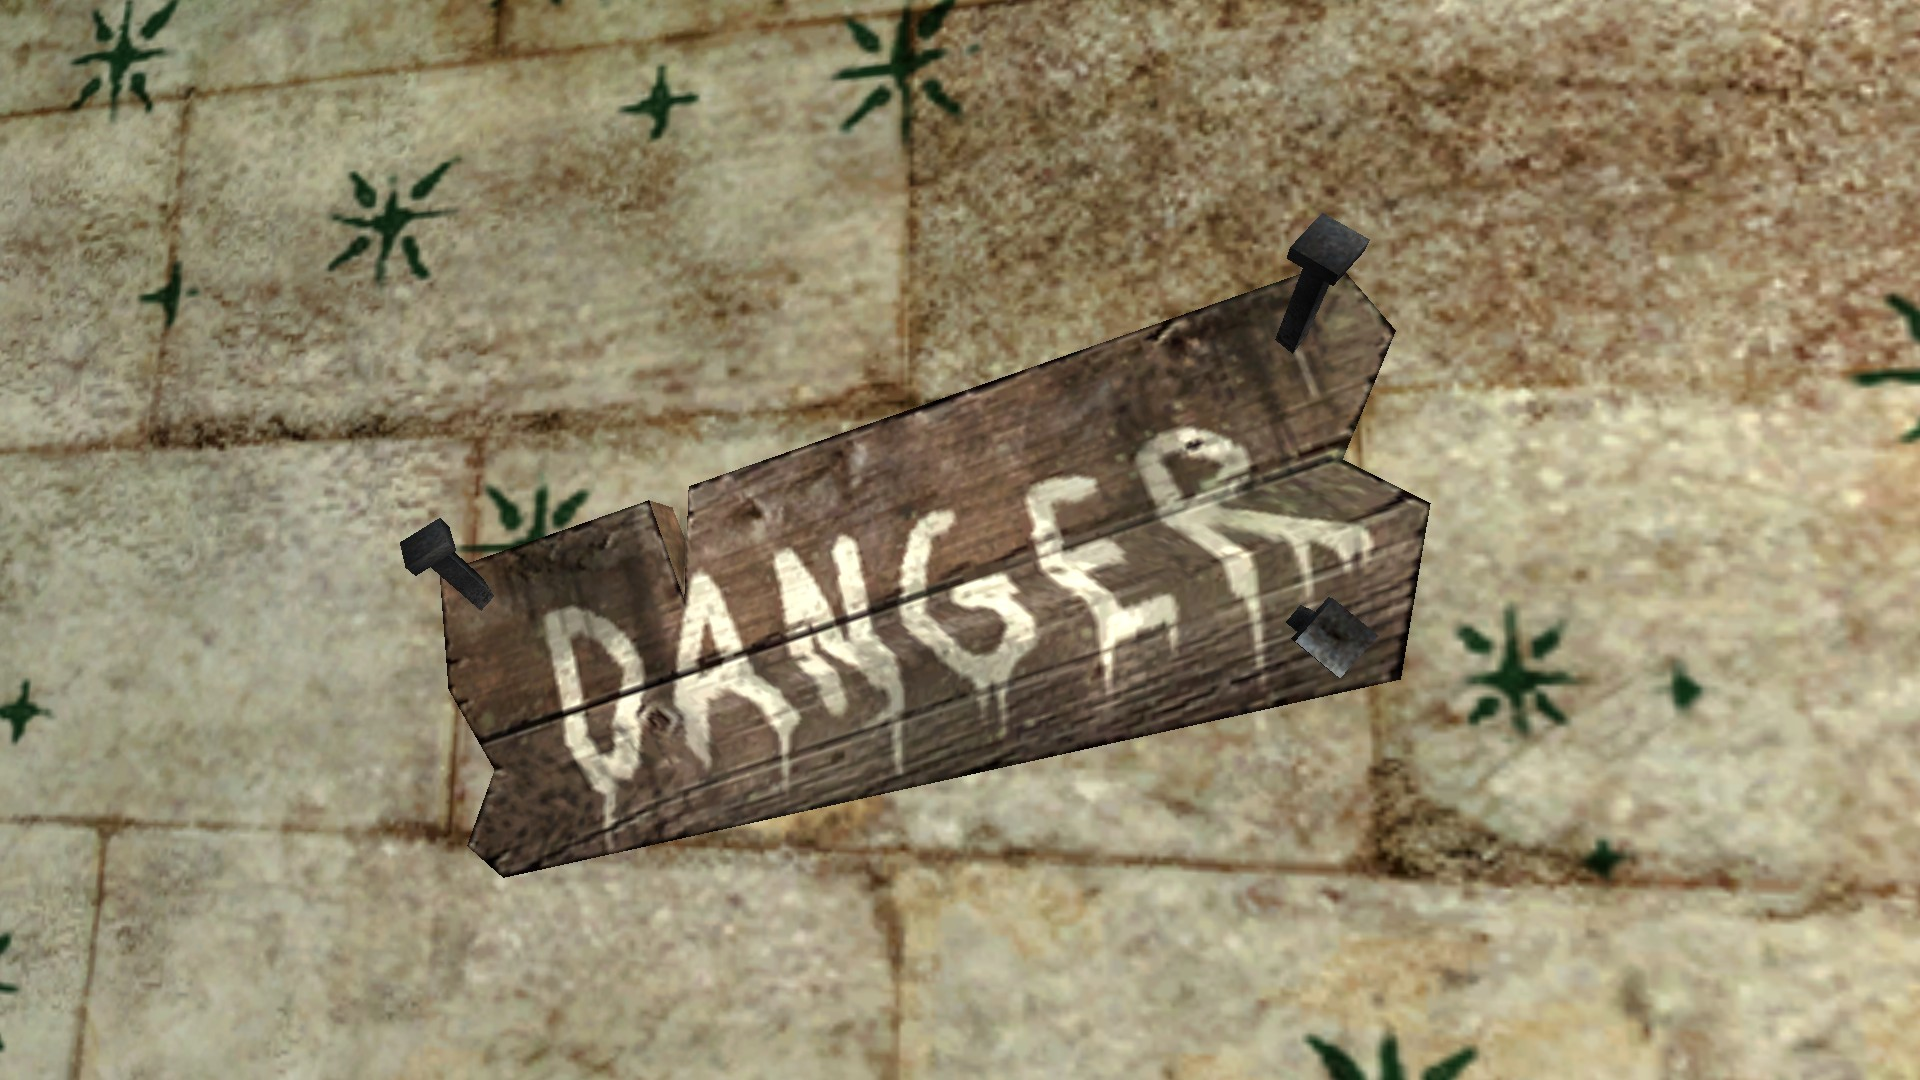 Sign: Danger !